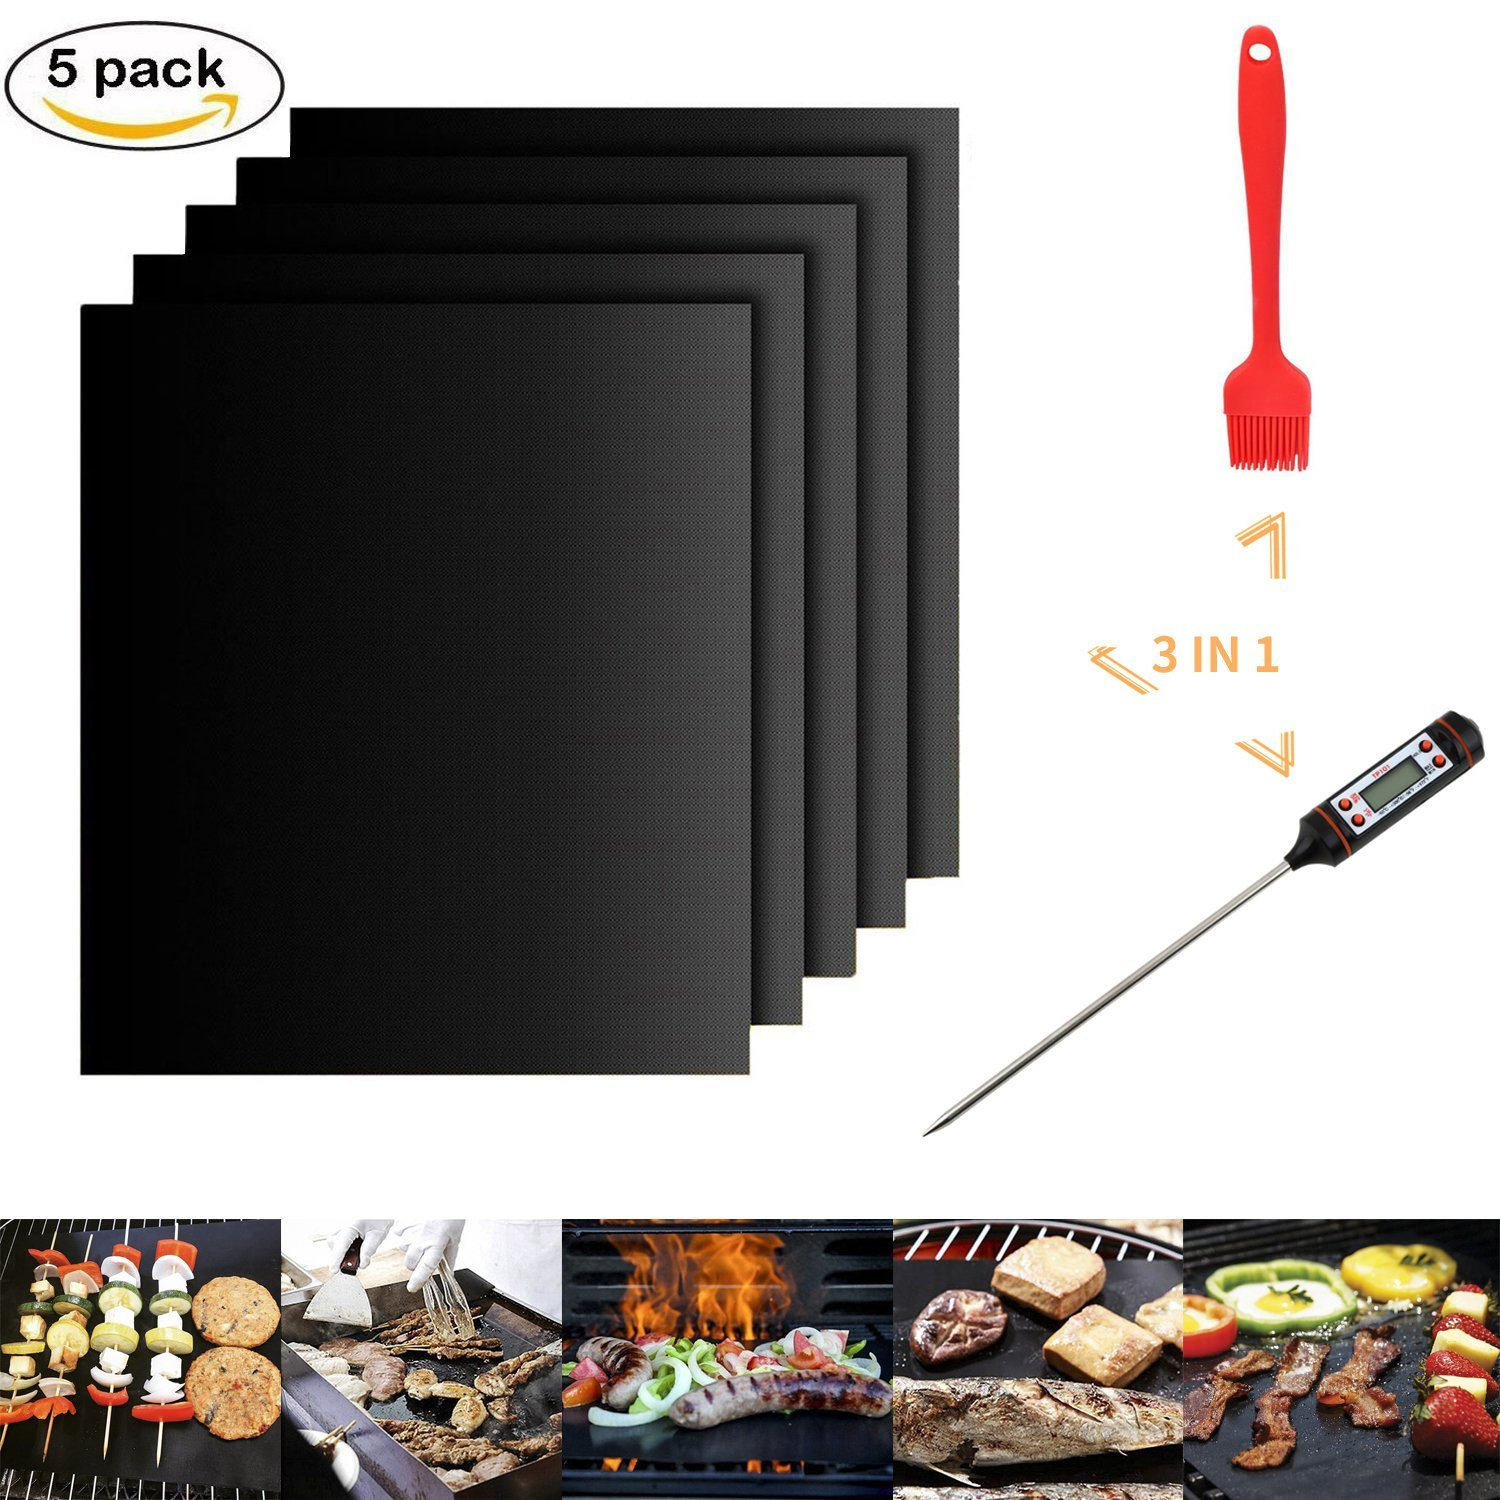 3 in 1 Grill Mat & Brush & Thermometer BBQ Tools, Set of 5 Non Stick Baking Mats, Instant Read Meat Digital... by